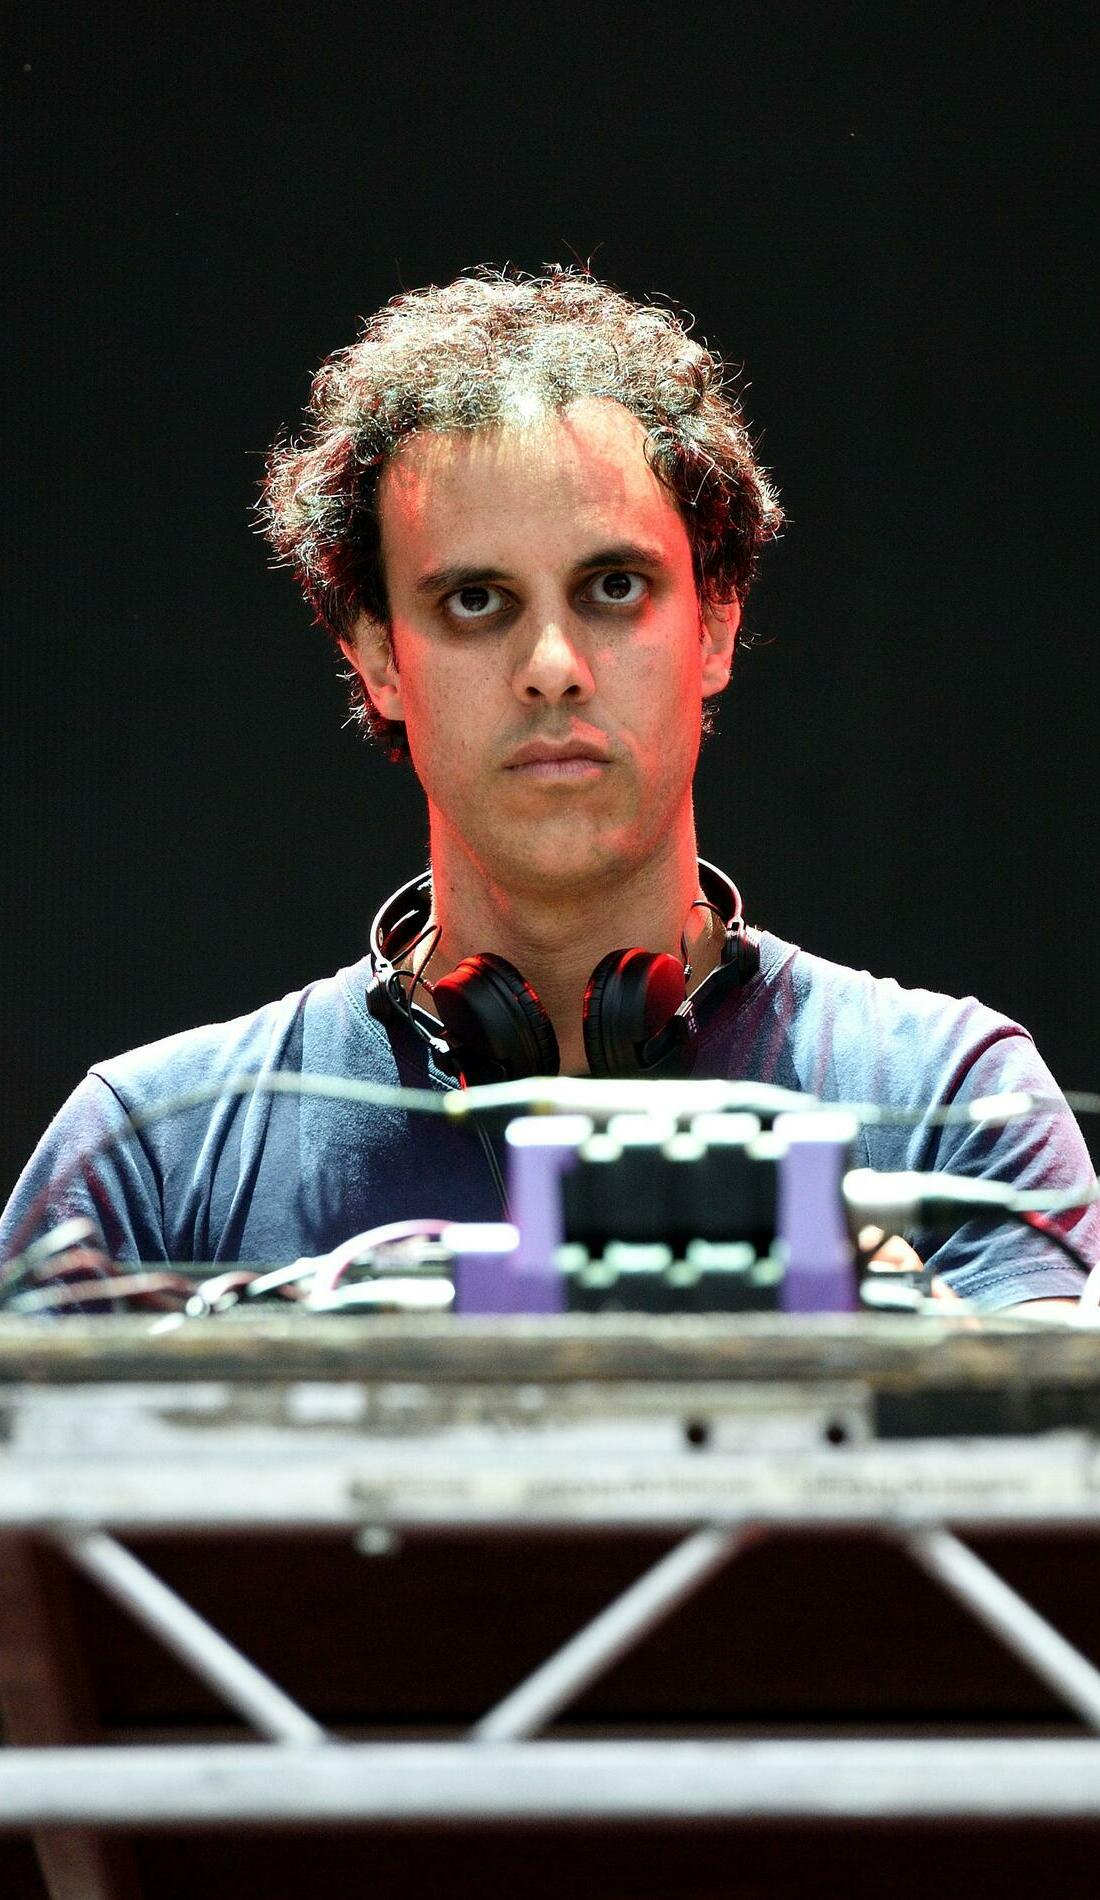 A Four Tet live event